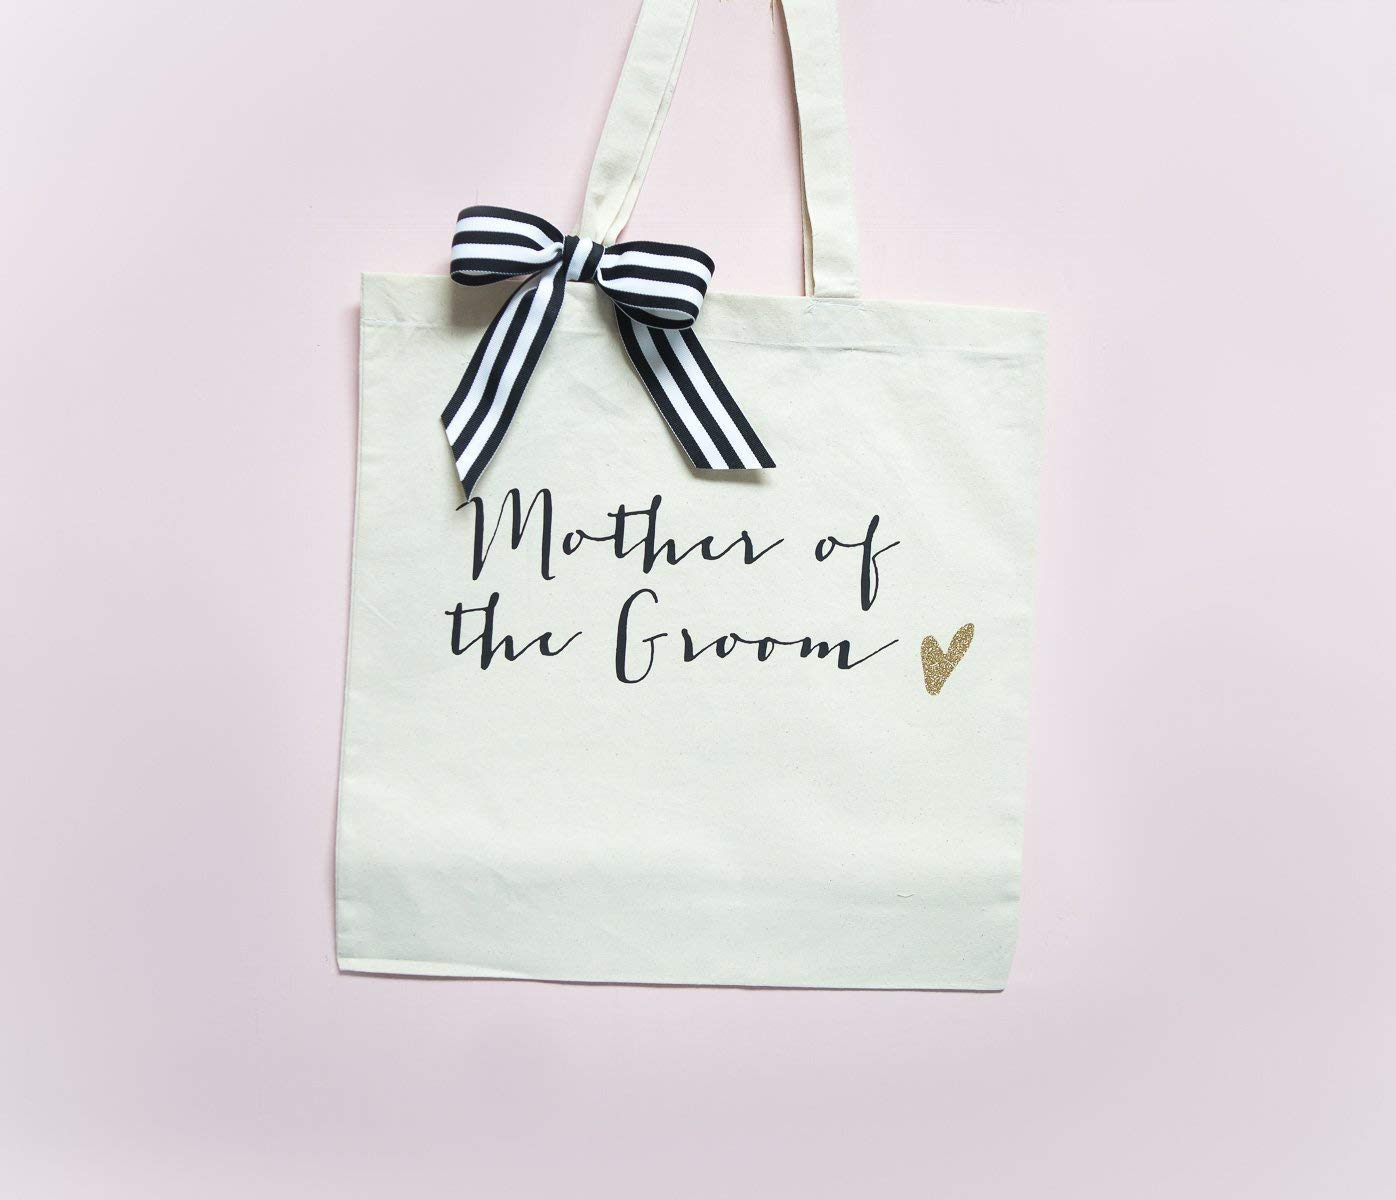 Black with Gold Glitter and Striped Ribbon Bags for Bride and Bridesmaids Designer Inspired Bridal Party Wedding Tote Bags Canvas Cotton Wedding Bags